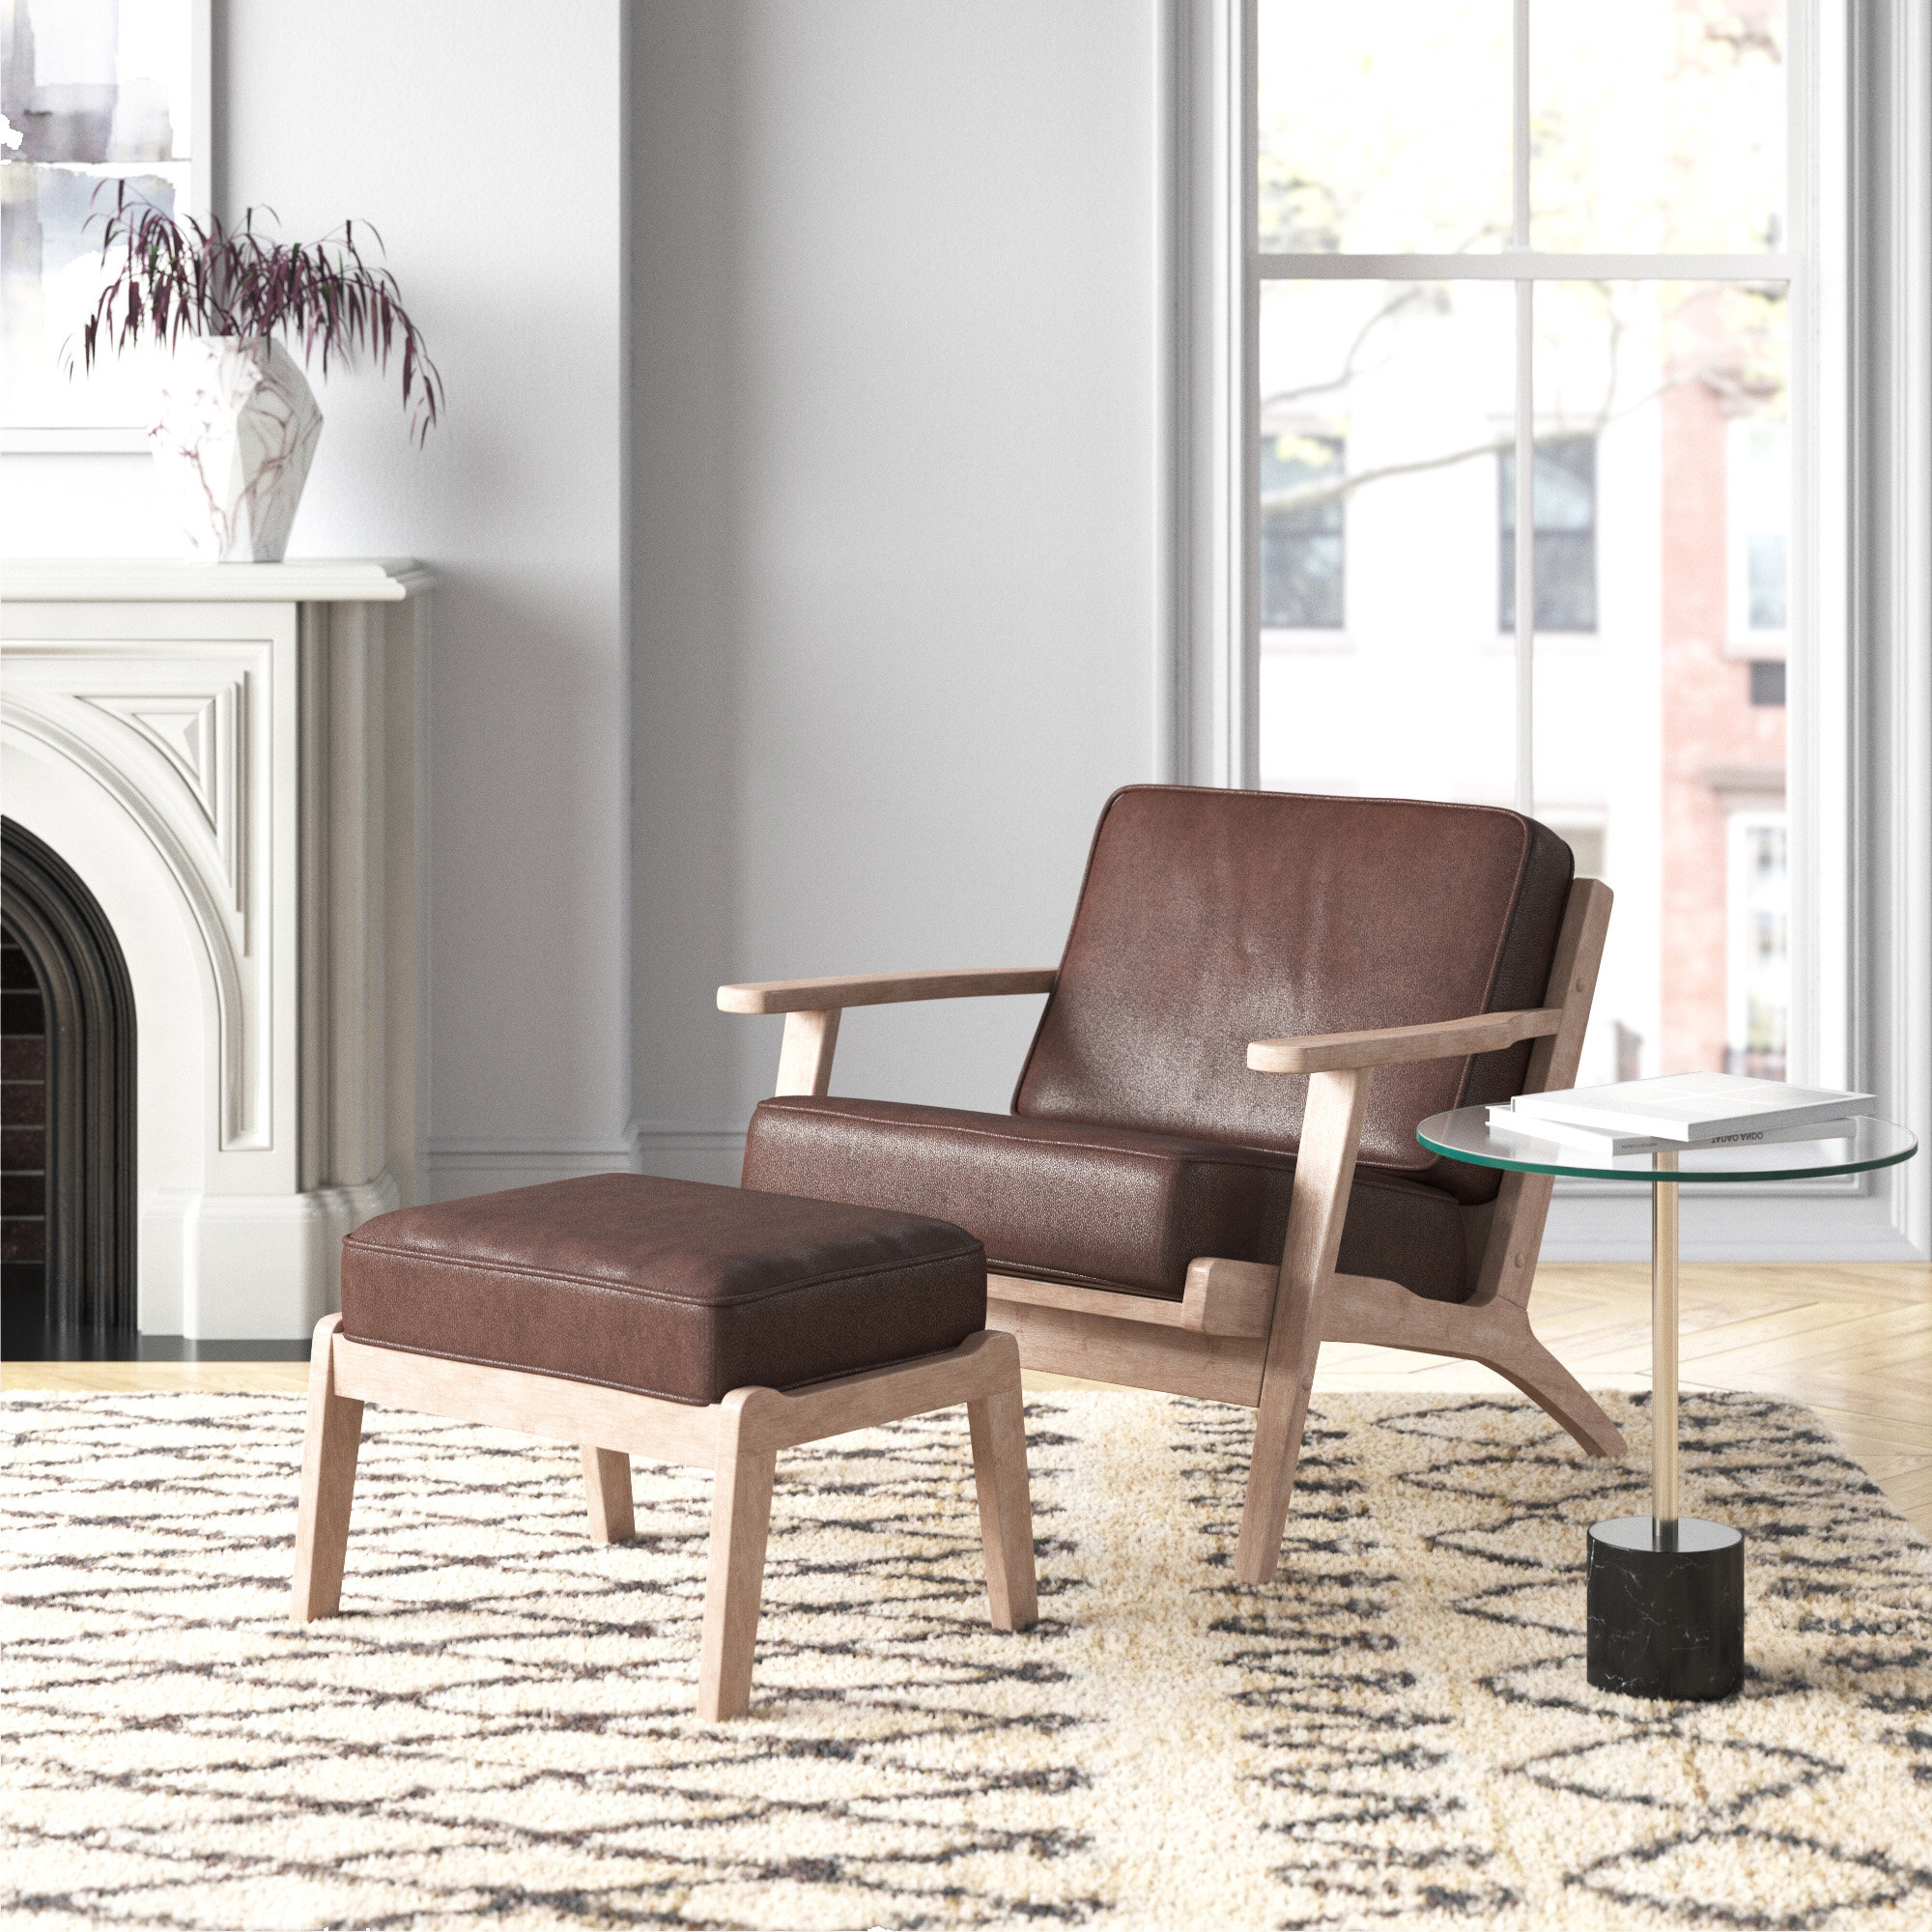 Adal Mid Century Modern Dark Brown Faux Leather Effect Fabric Upholstered Antique Oak Finished 2 Piece Wood Armchair And Ottoman Set Throughout Newest Modern Armchairs And Ottoman (View 14 of 20)